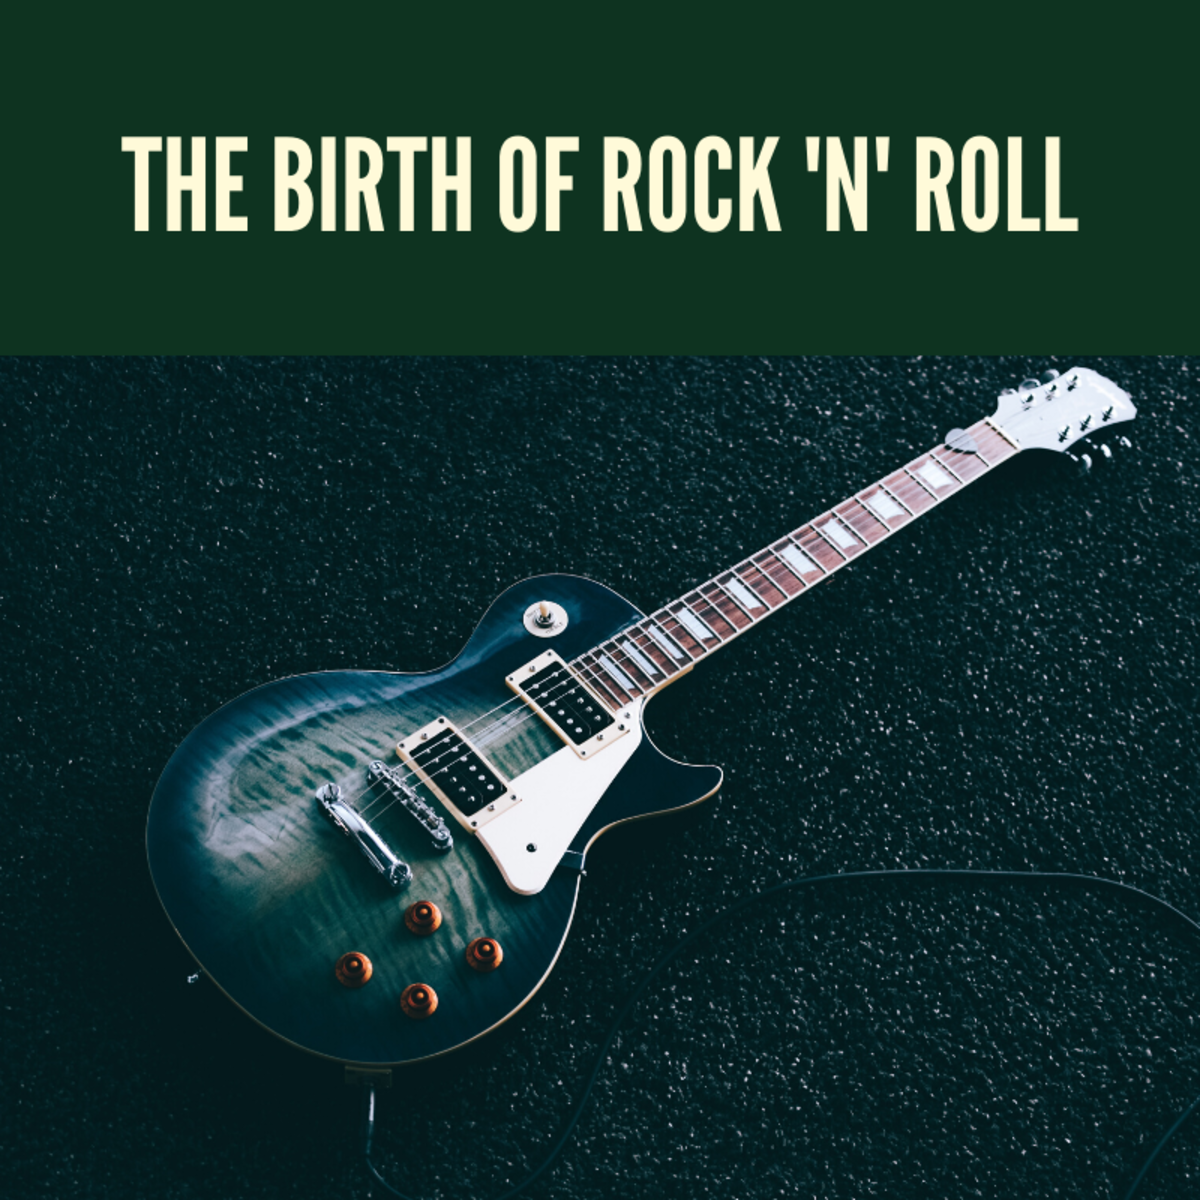 The Birth of Rock 'n' Roll